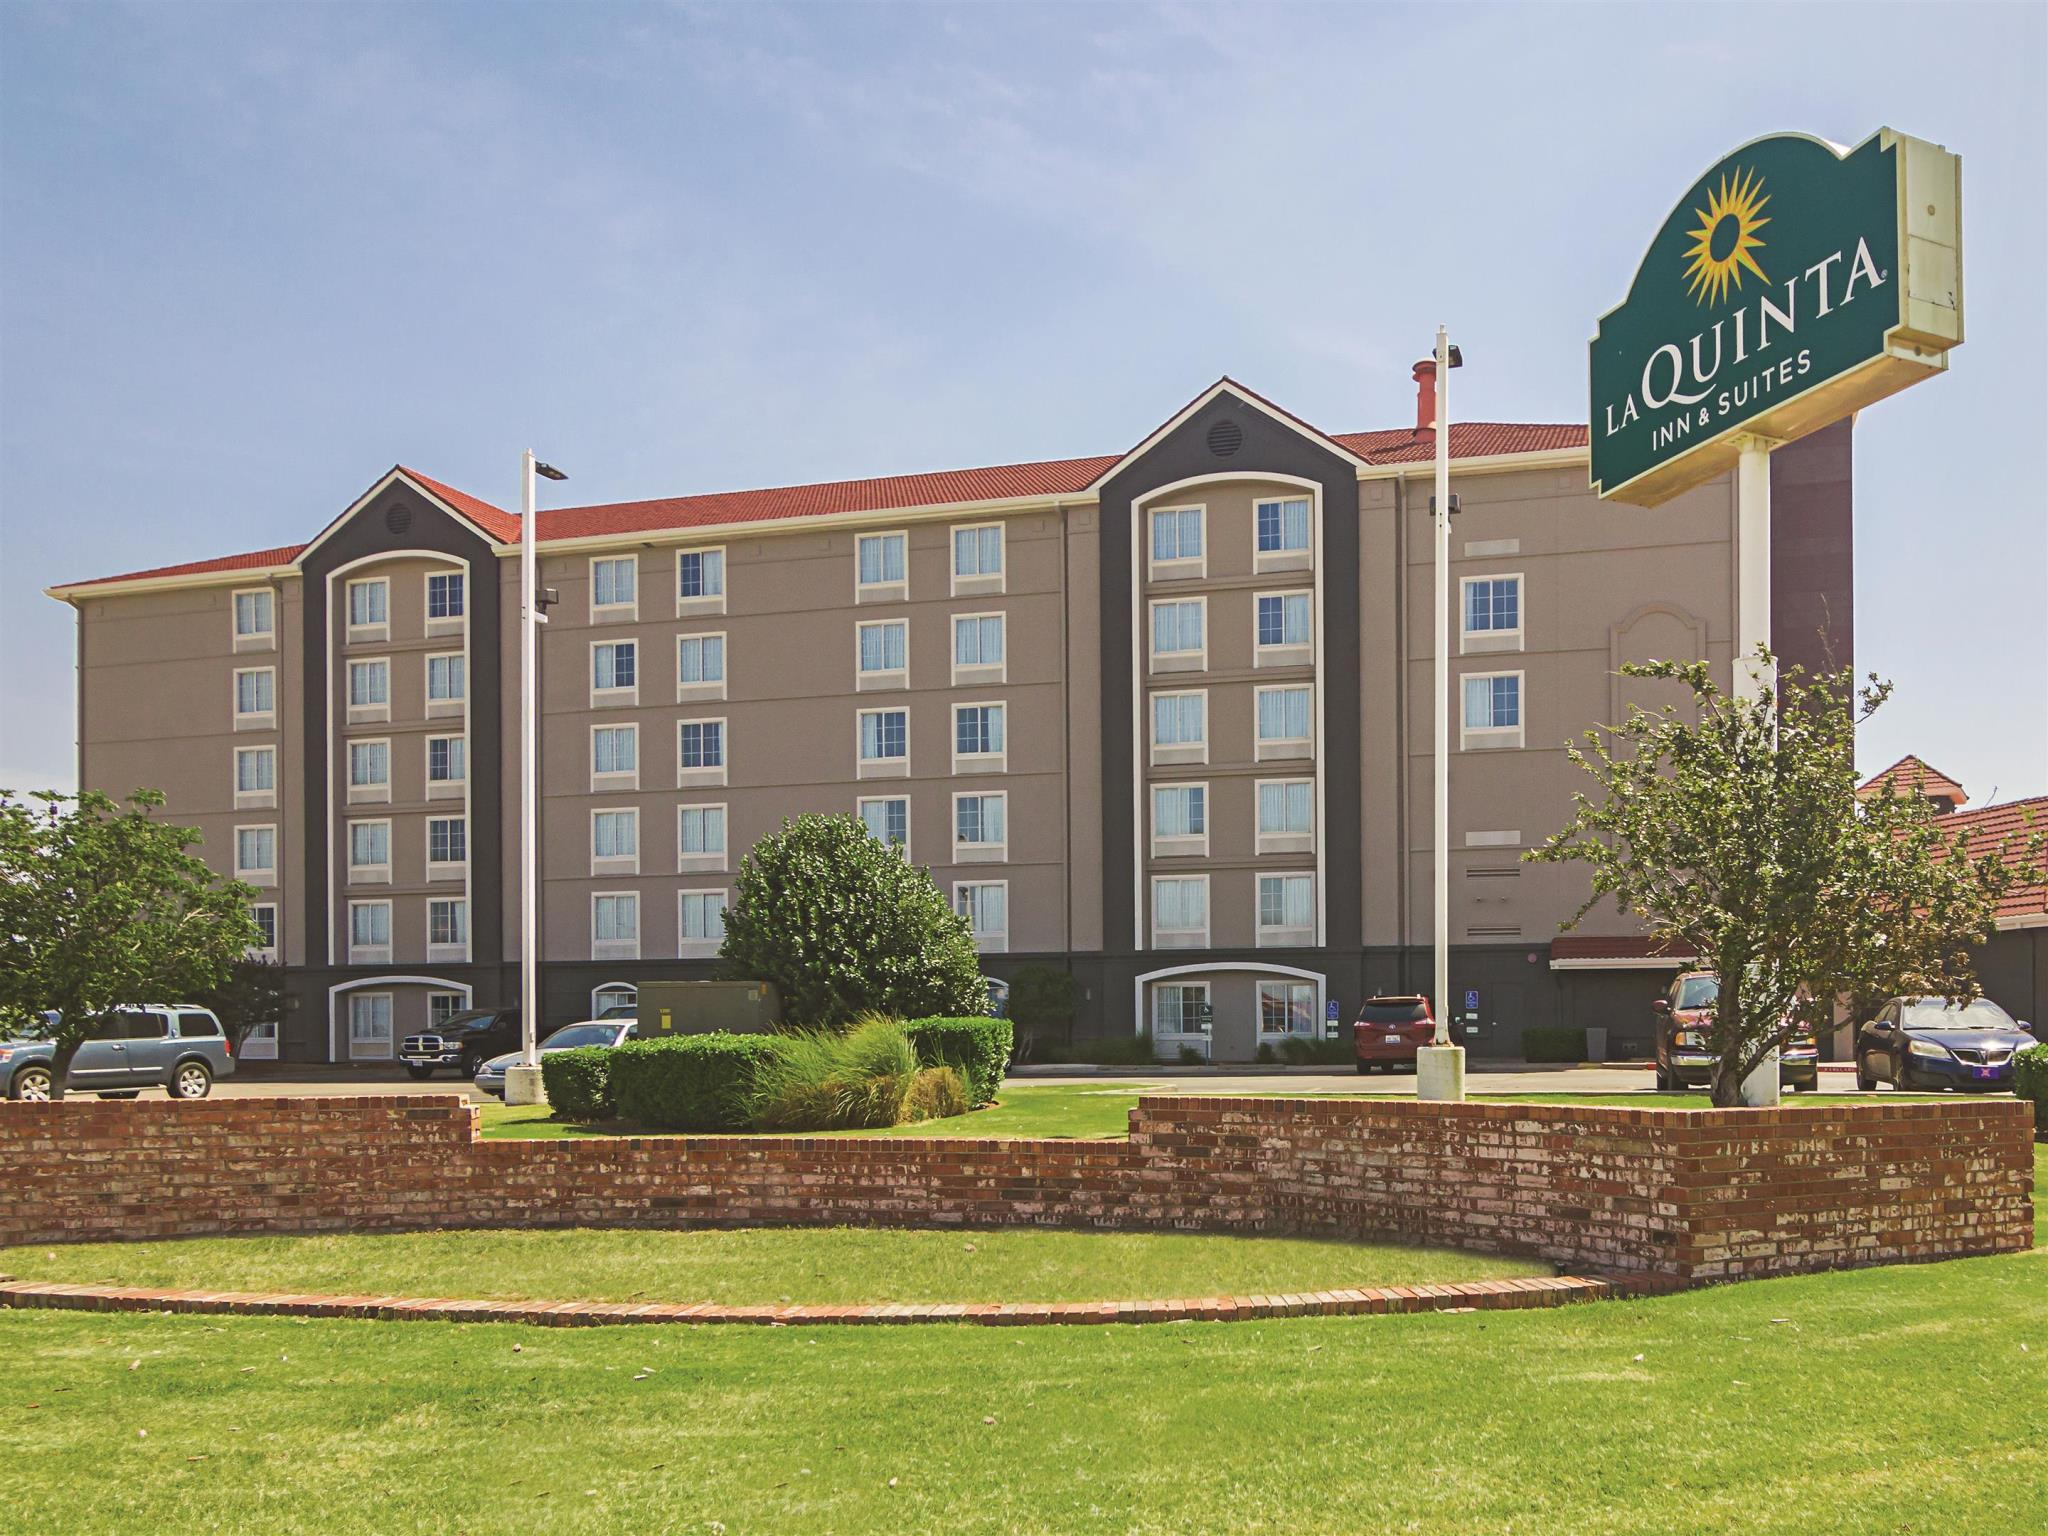 La Quinta Inn And Suites By Wyndham Oklahoma City   NW Expwy